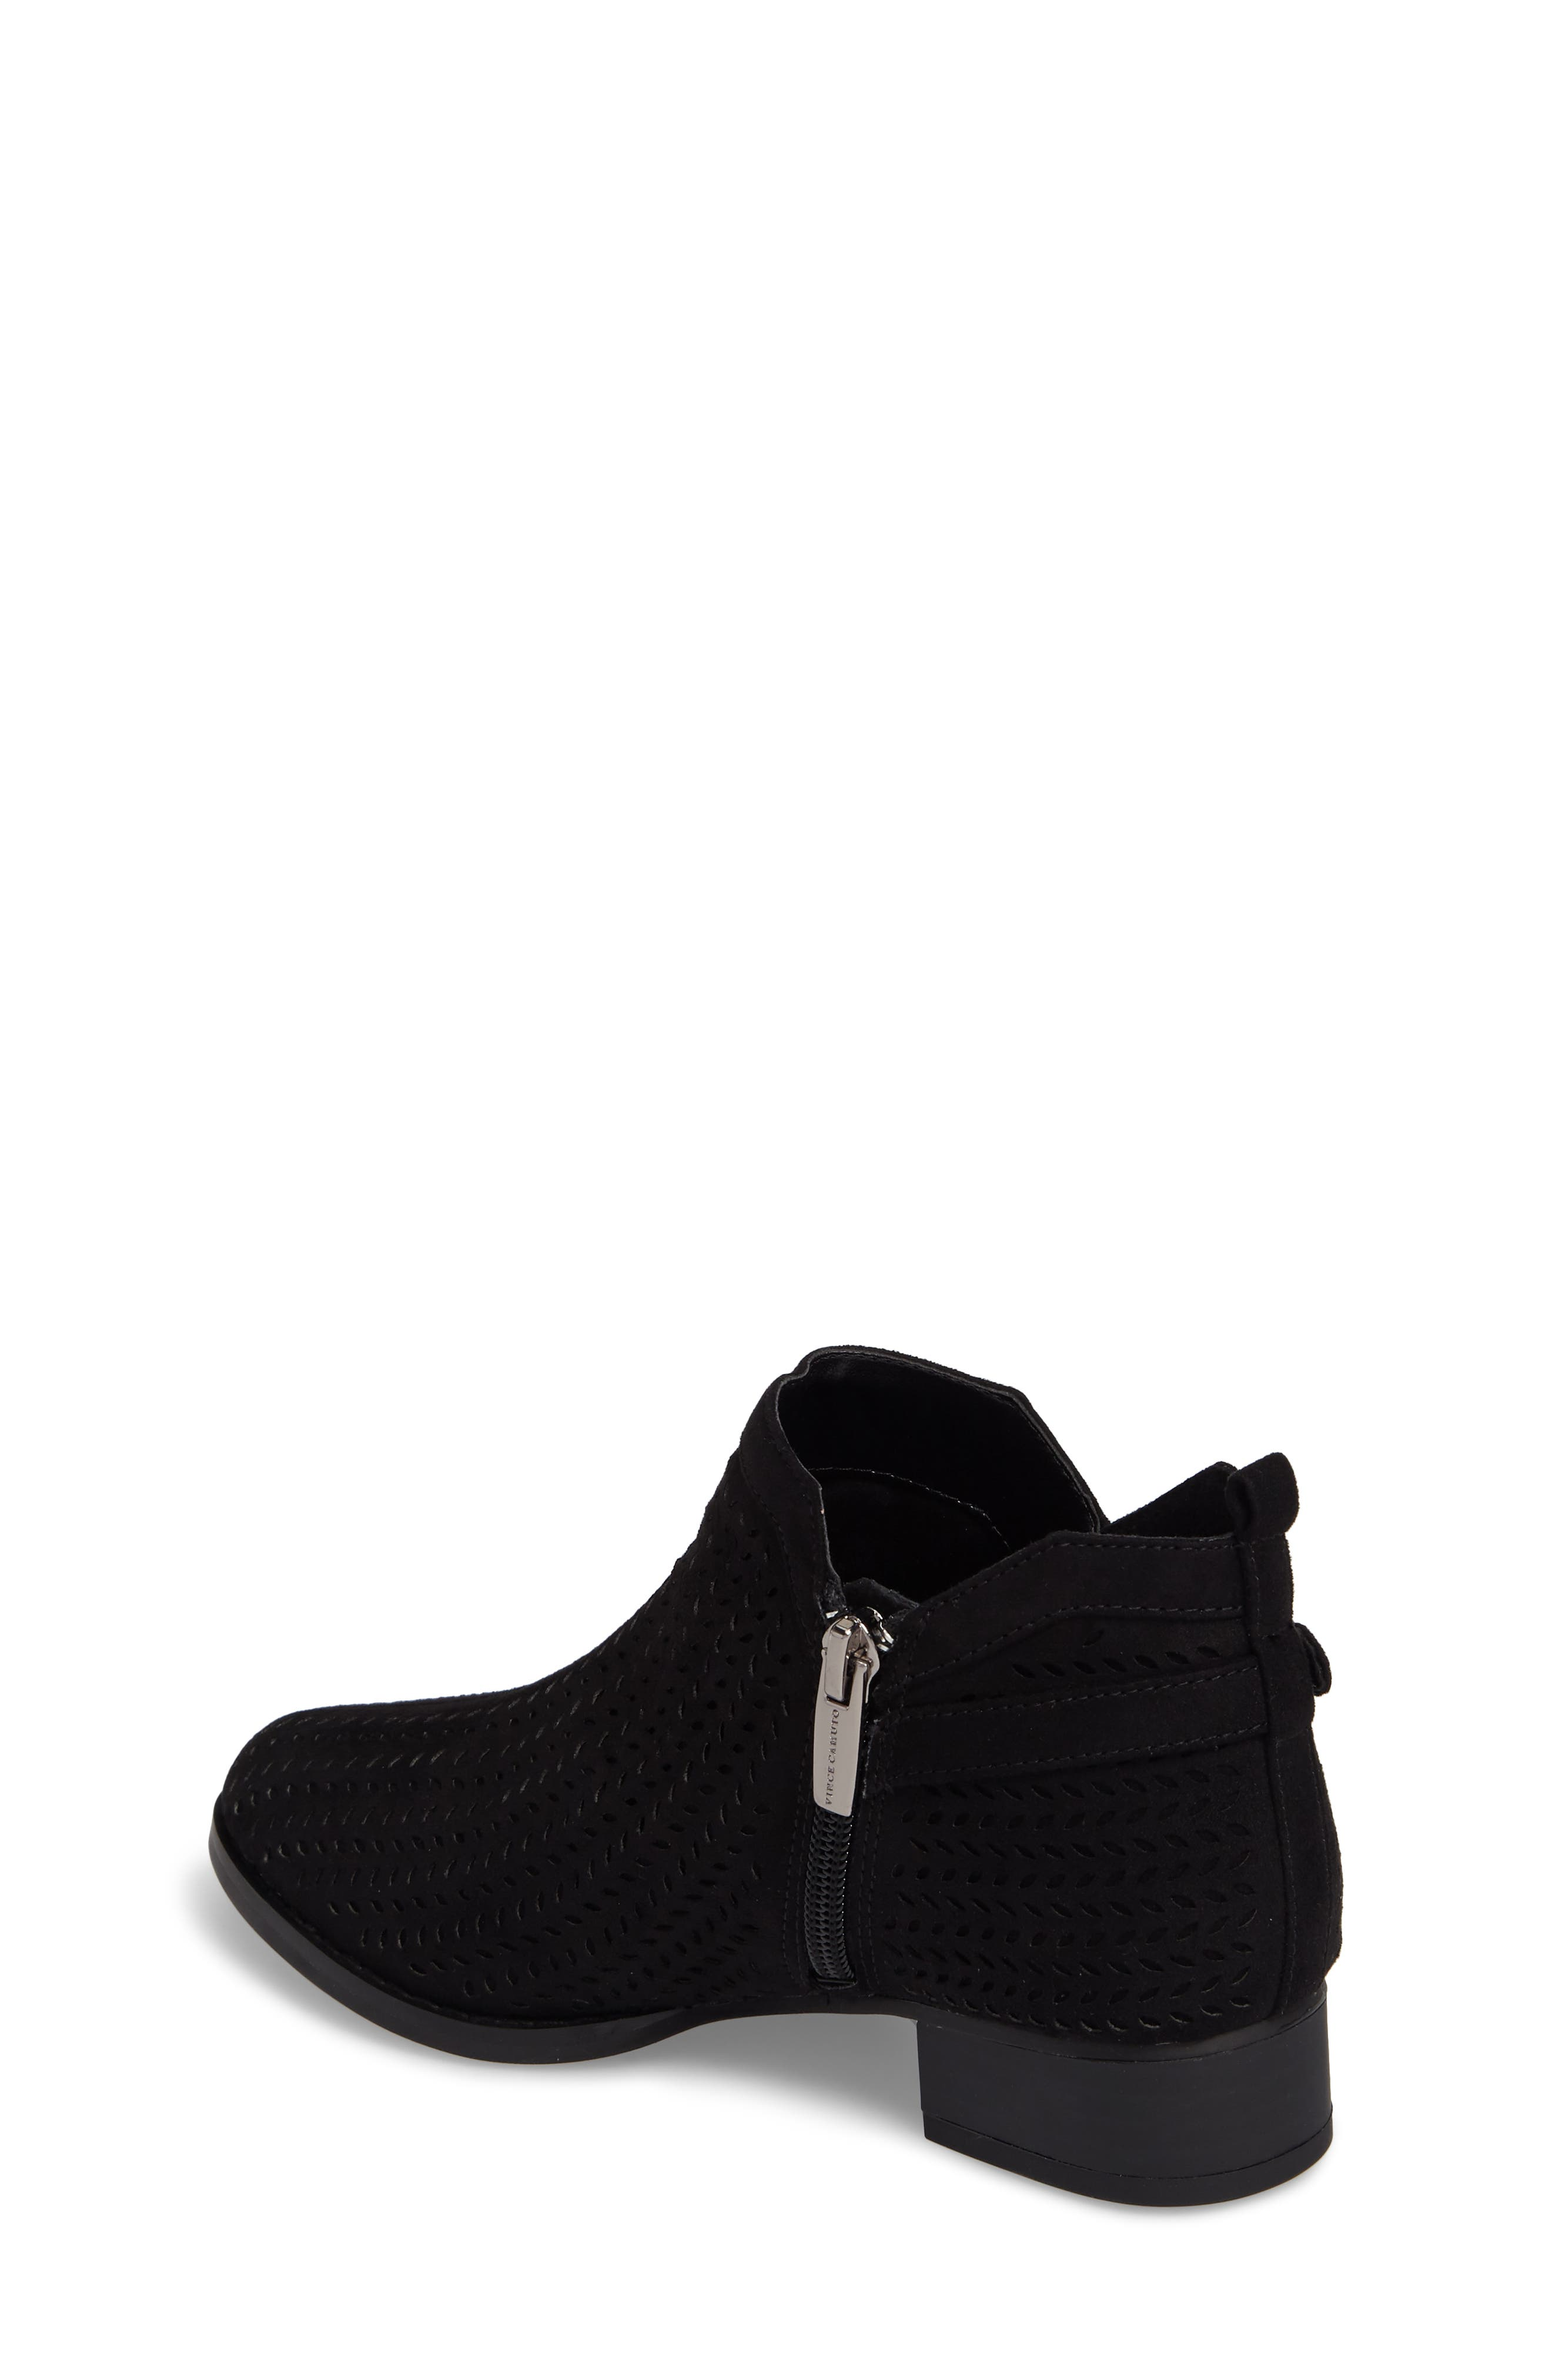 Campina Perforated Bootie,                             Alternate thumbnail 2, color,                             BLACK SUEDE